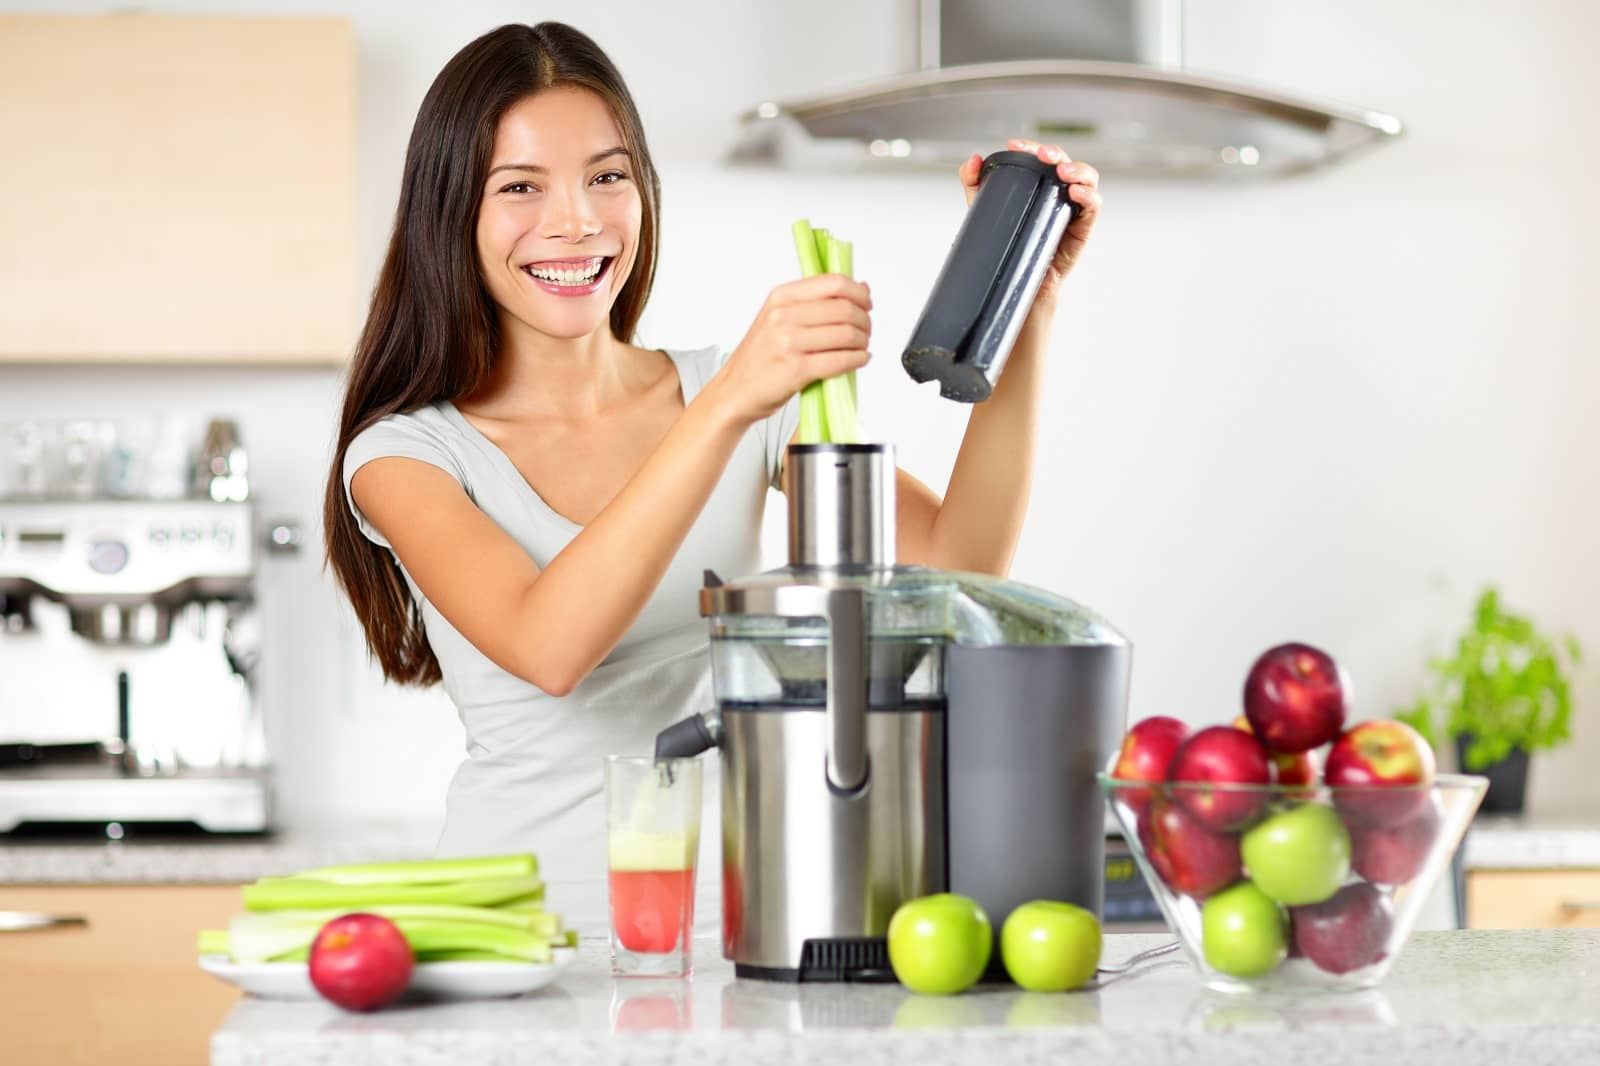 Best Masticating Juicer 2020.Best Masticating Juicer In 2020 Devices For Home